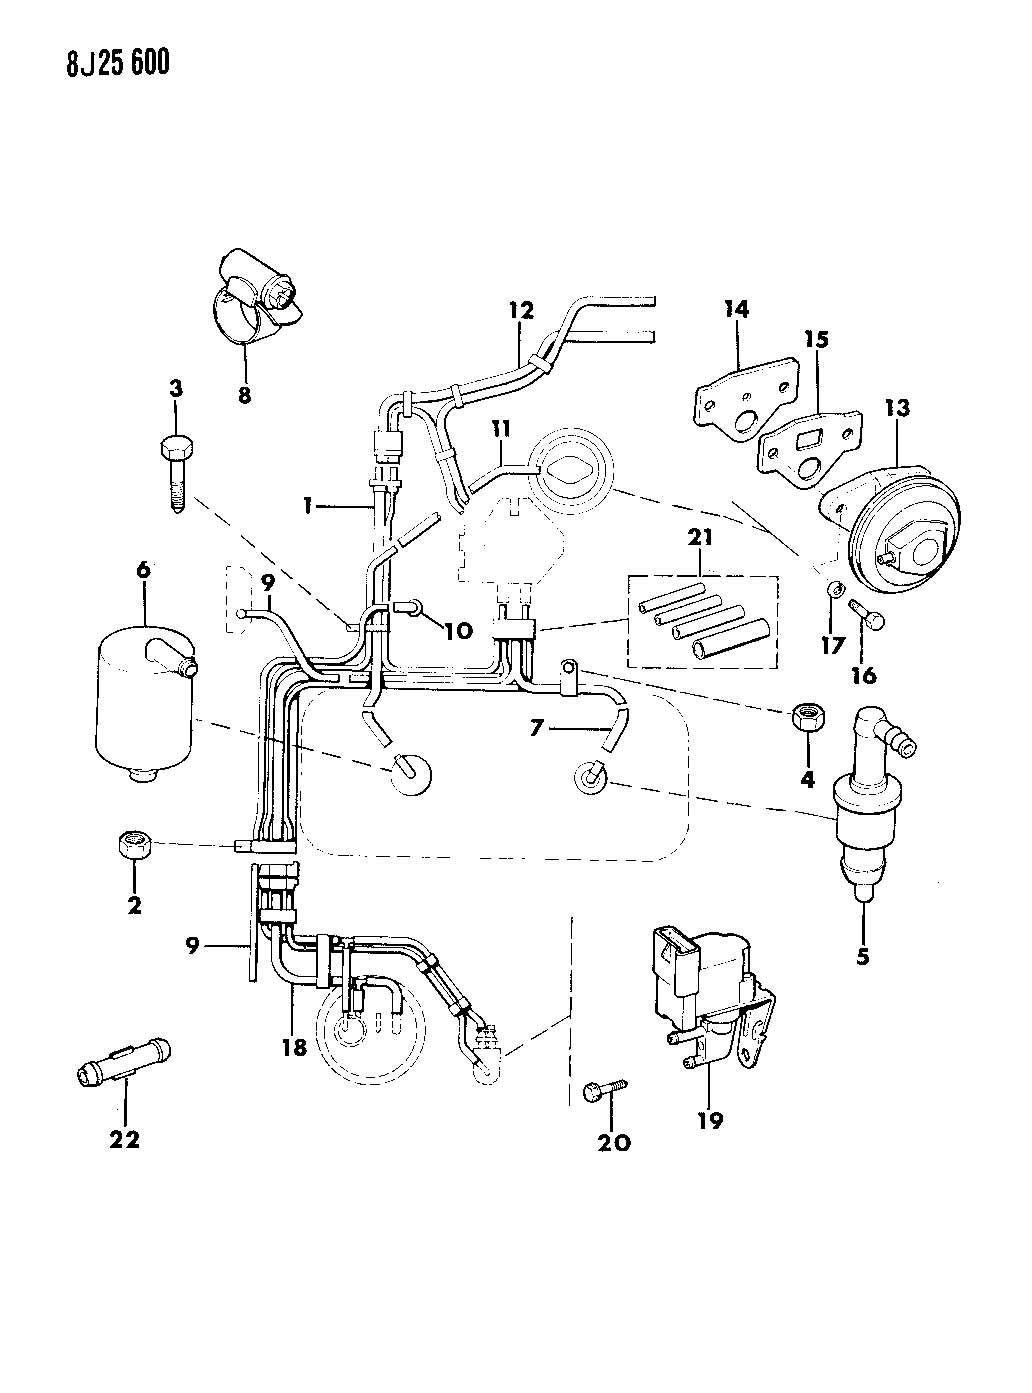 Jeep Wrangler 4 2 Vacuum Diagram Jeep Auto Fuse Box